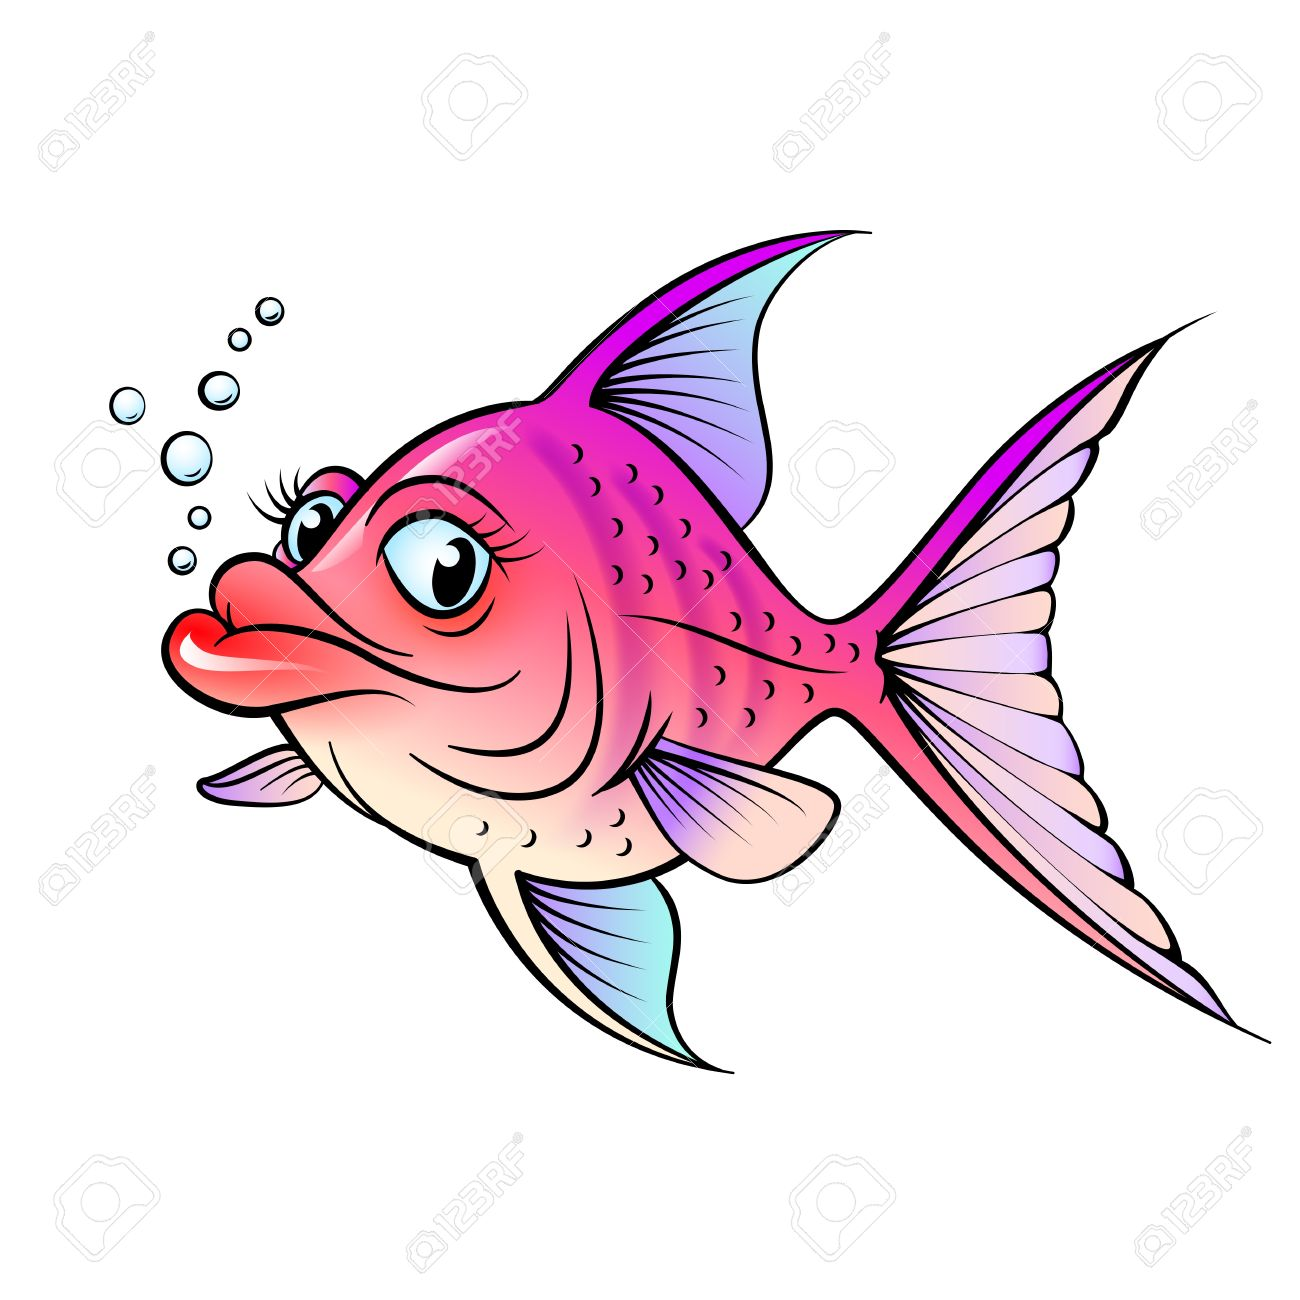 Cartoon fish. Illustration for design on white background Stock Vector - 14562066